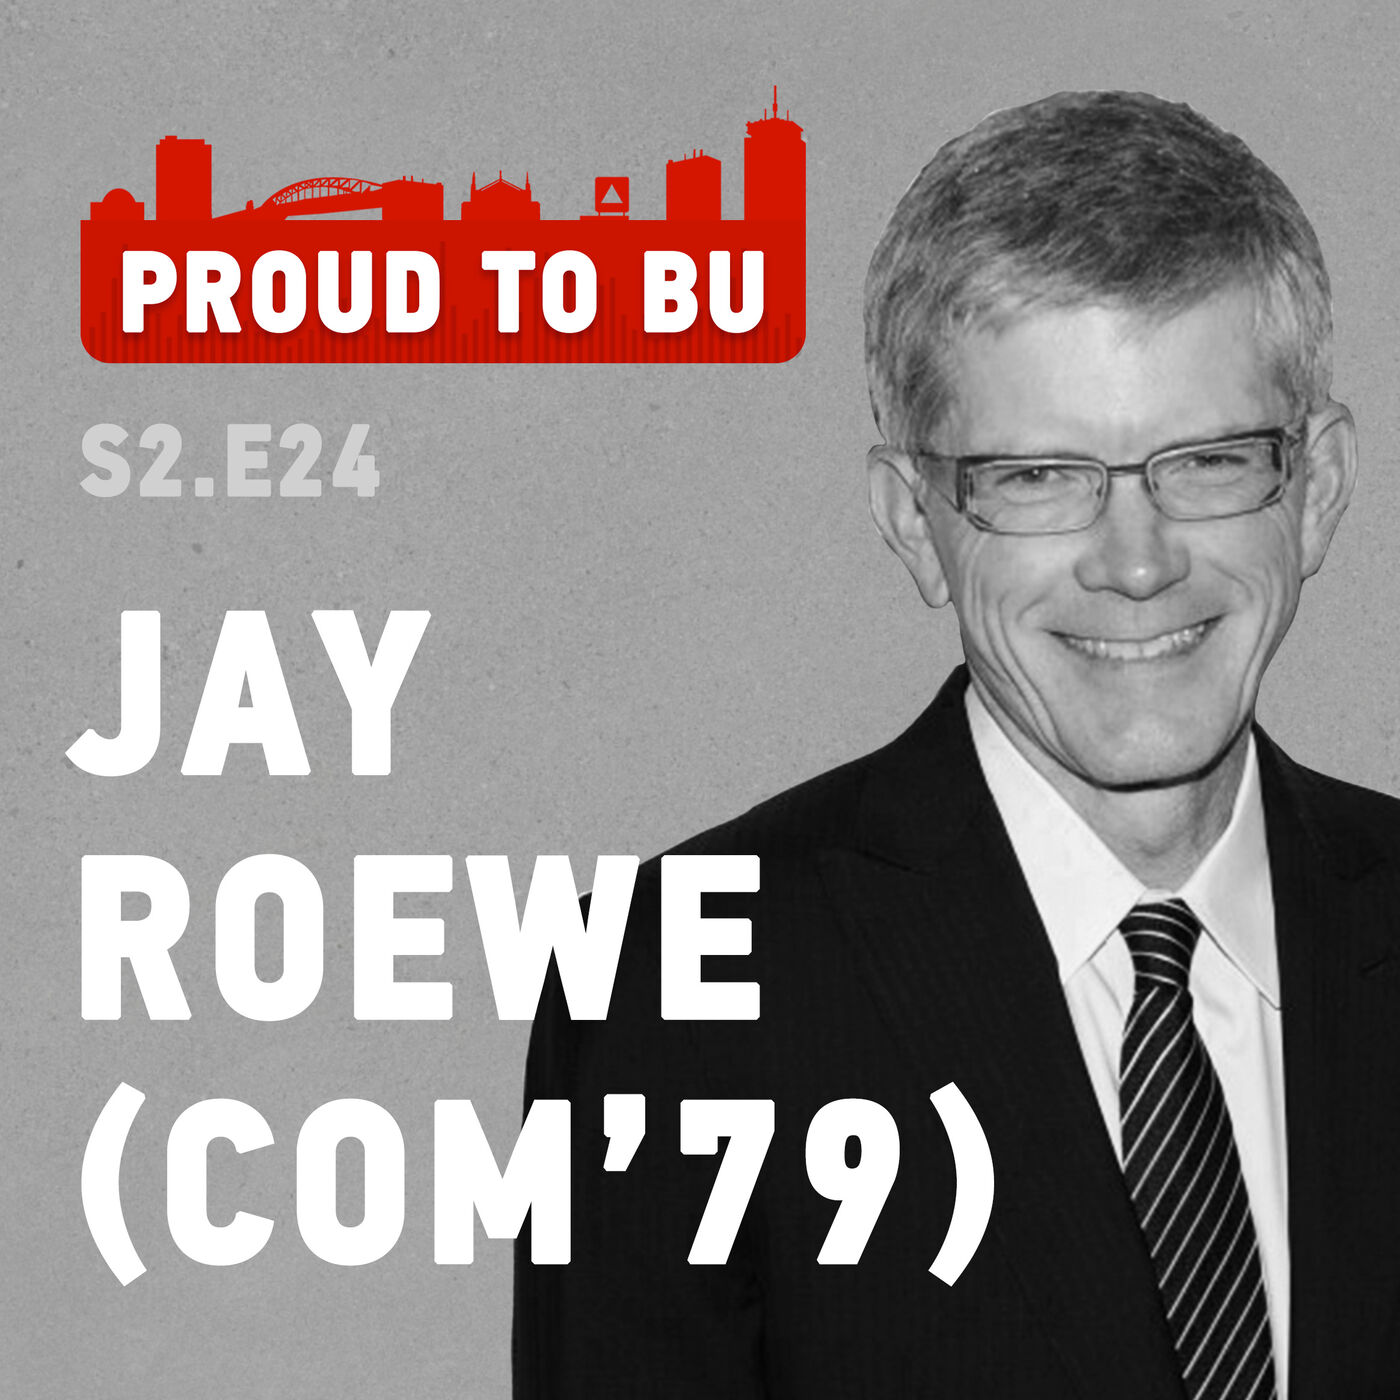 S2 E24: Top HBO Executive, Jay Roewe (COM'79), on the Importance of Staying Hungry